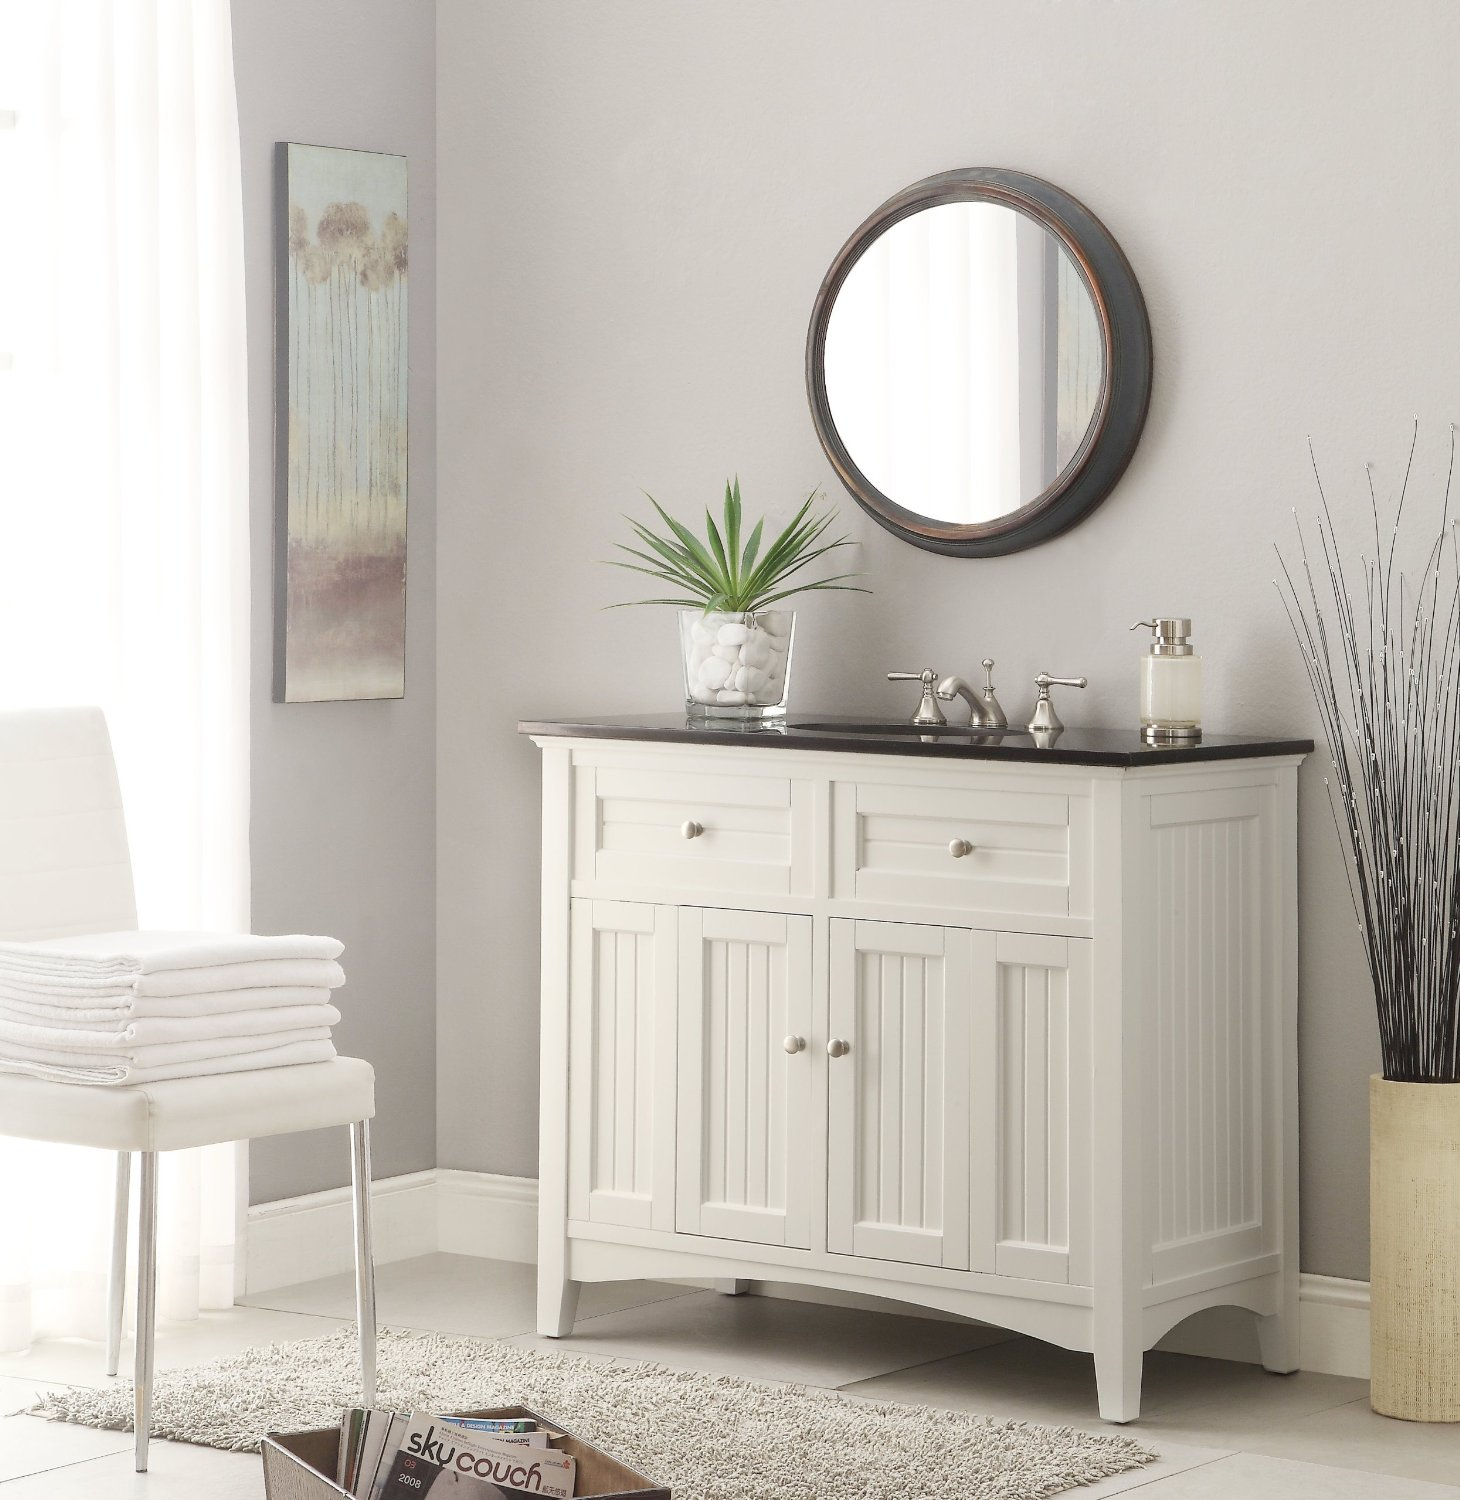 adelina 48.75†inch antique white sink bathroom vanity, black